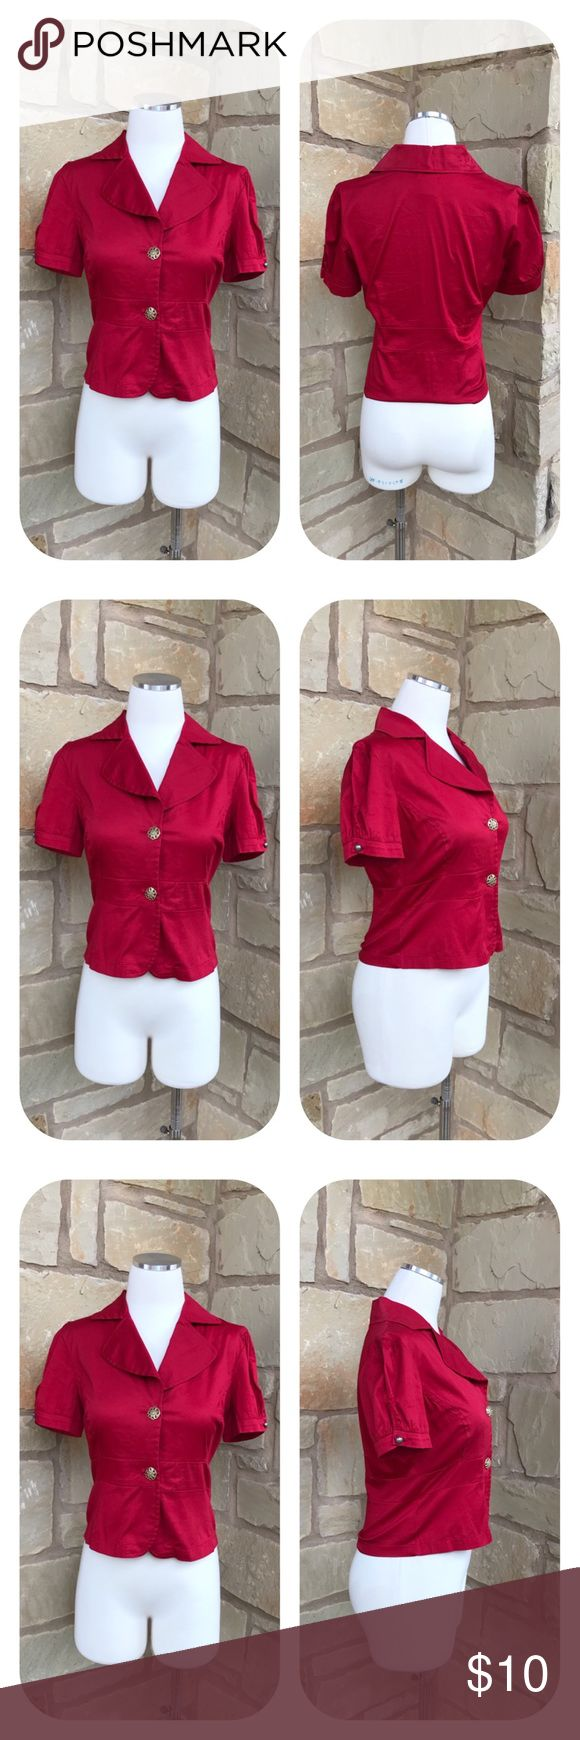 """CatWalk Red Short Puff Sleeves Peplum Top Size M Catwalk Red Short Sleeve Red Peplum Top Size M  -  Button-Down -  Short Puff Sleeves -  96% Cotton 4% Spandex  -  Size M     Armpit to armpit 18""""     Armpit to end of sleeve 2""""     Shoulder to hem 20""""  Thanks for visiting! ❤️ Catwalk Tops Button Down Shirts"""